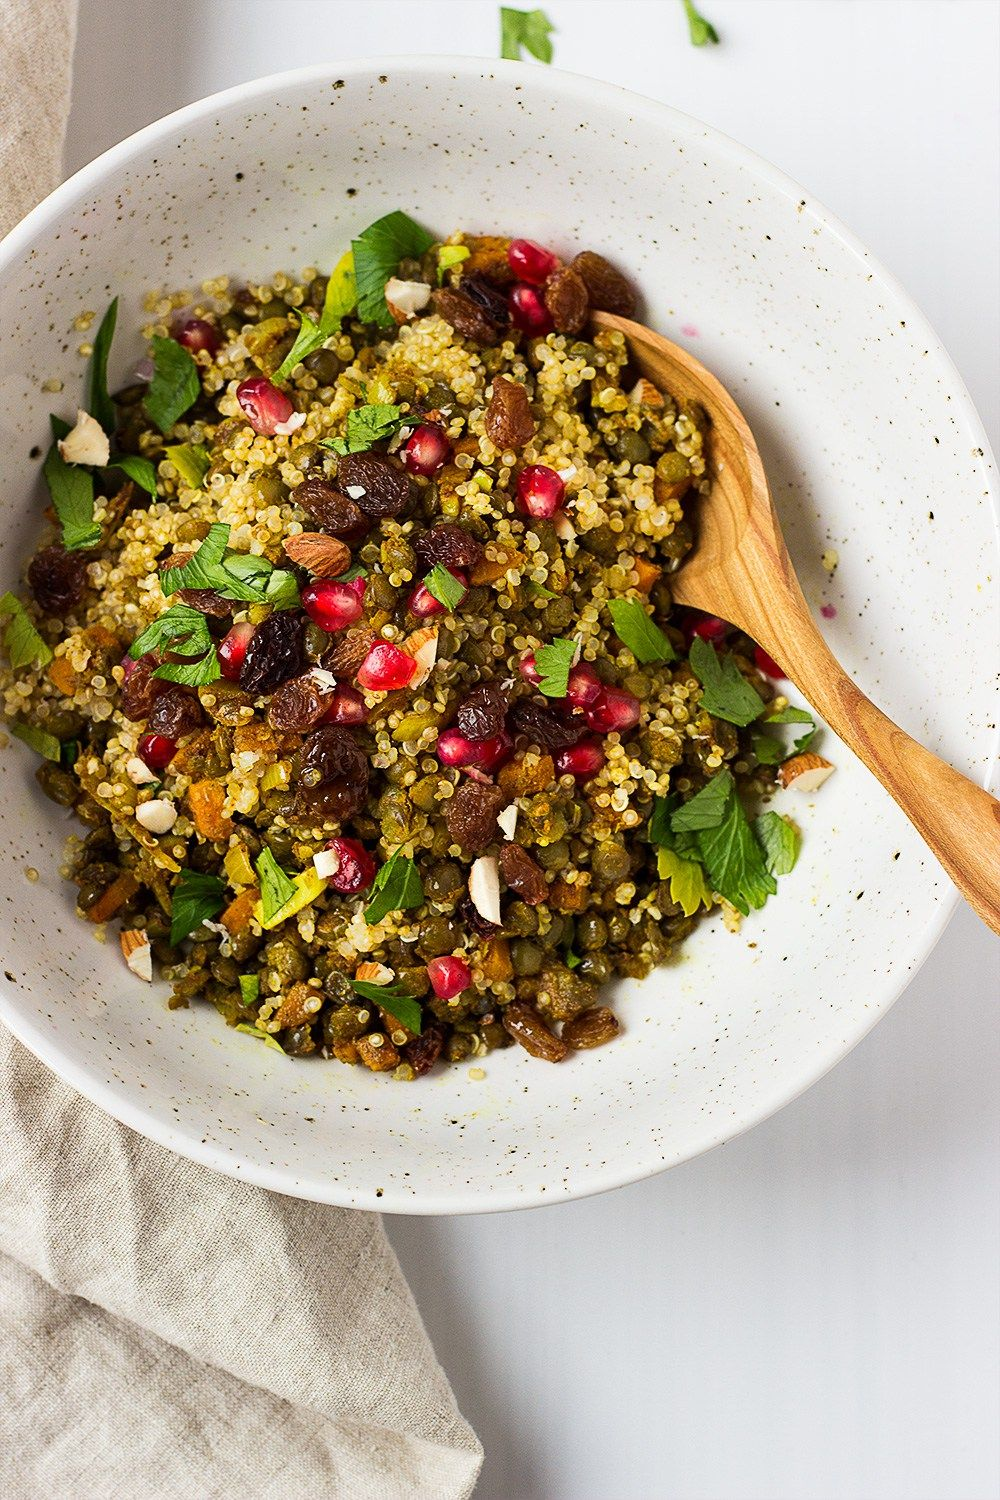 Quick And Easy Moroccan Style Puy Lentil And Quinoa Salad